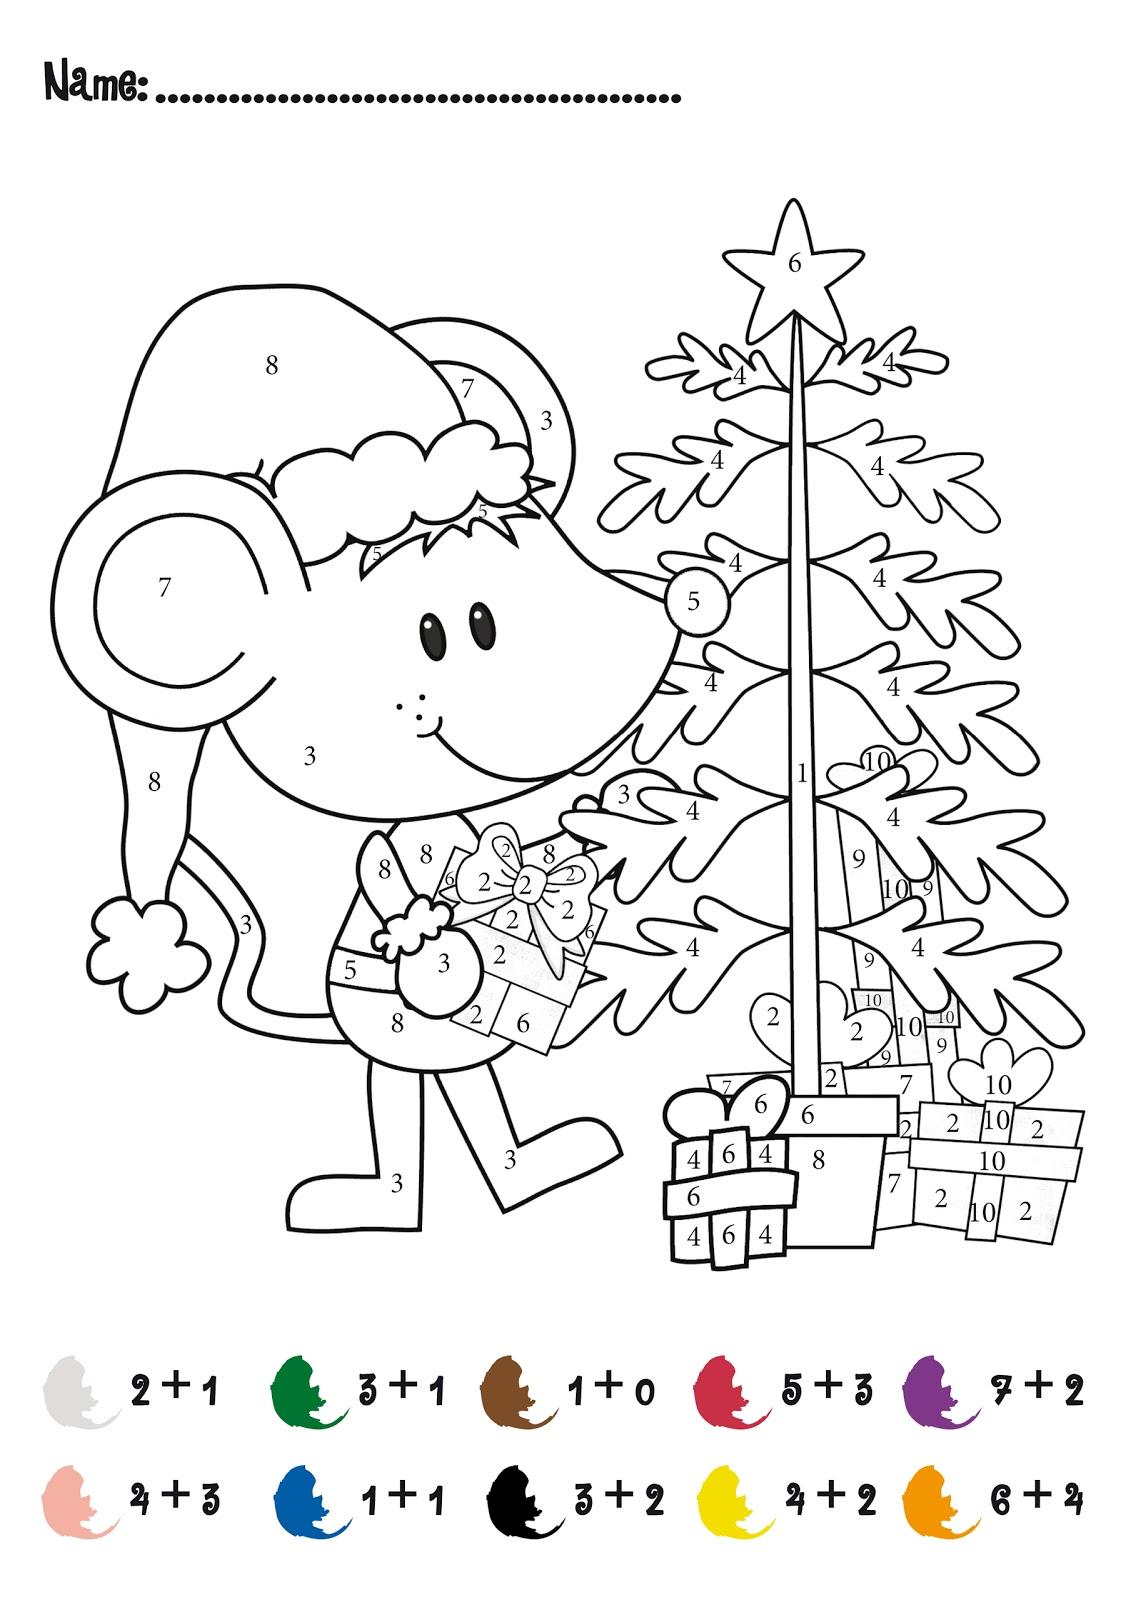 Printable Christmas Games for Kids AND Adults